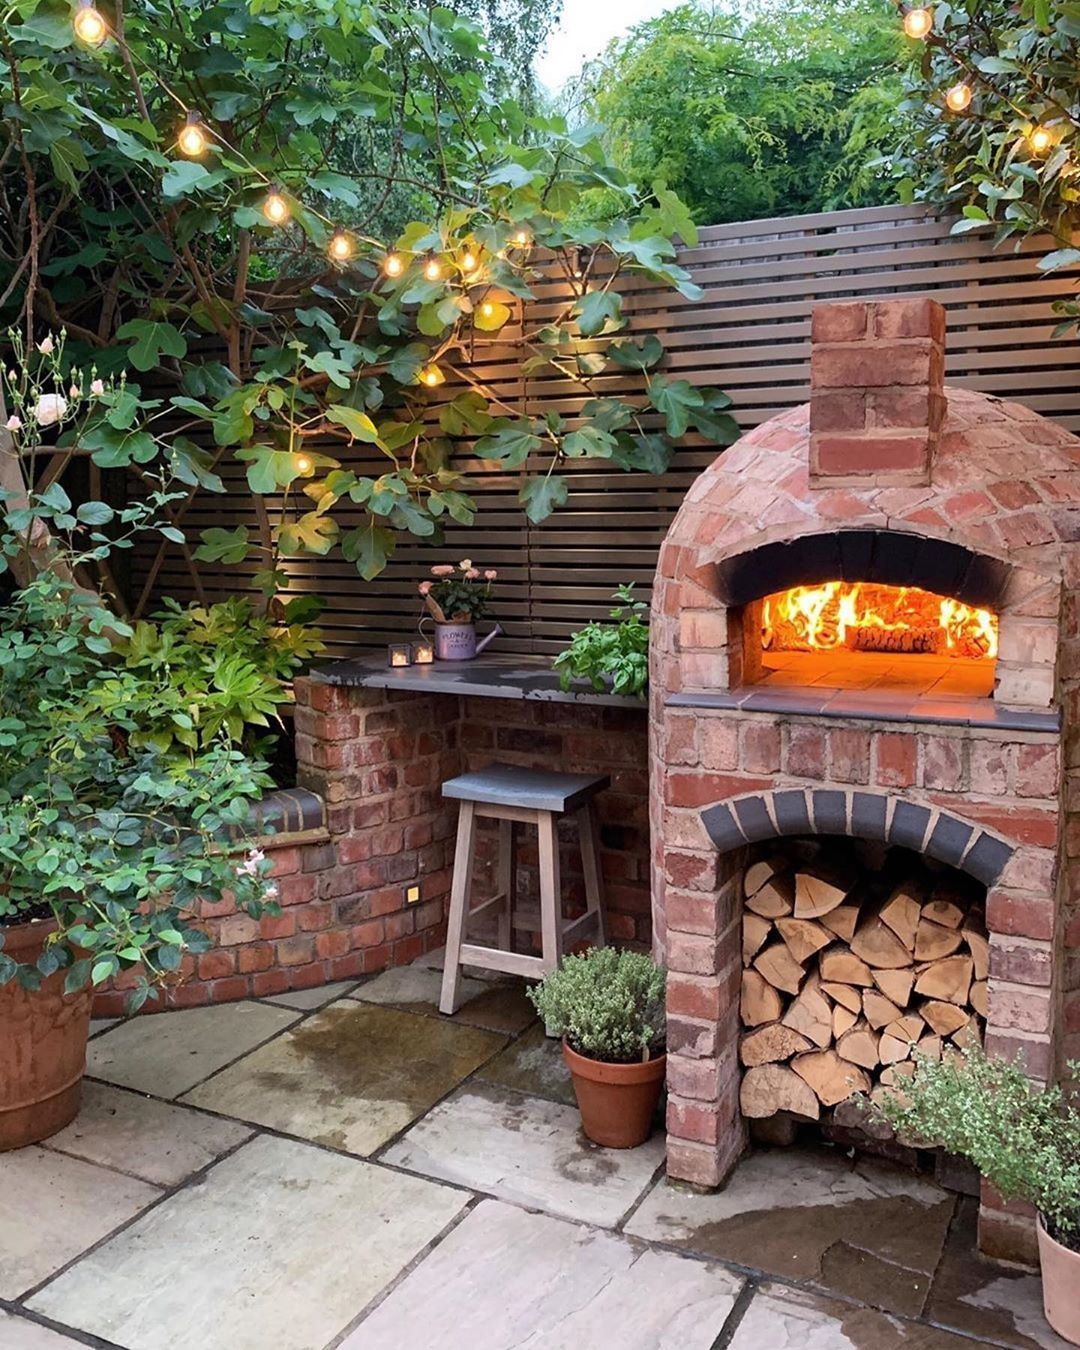 Who has or wants a pizza oven 🍕like this one Outdoor